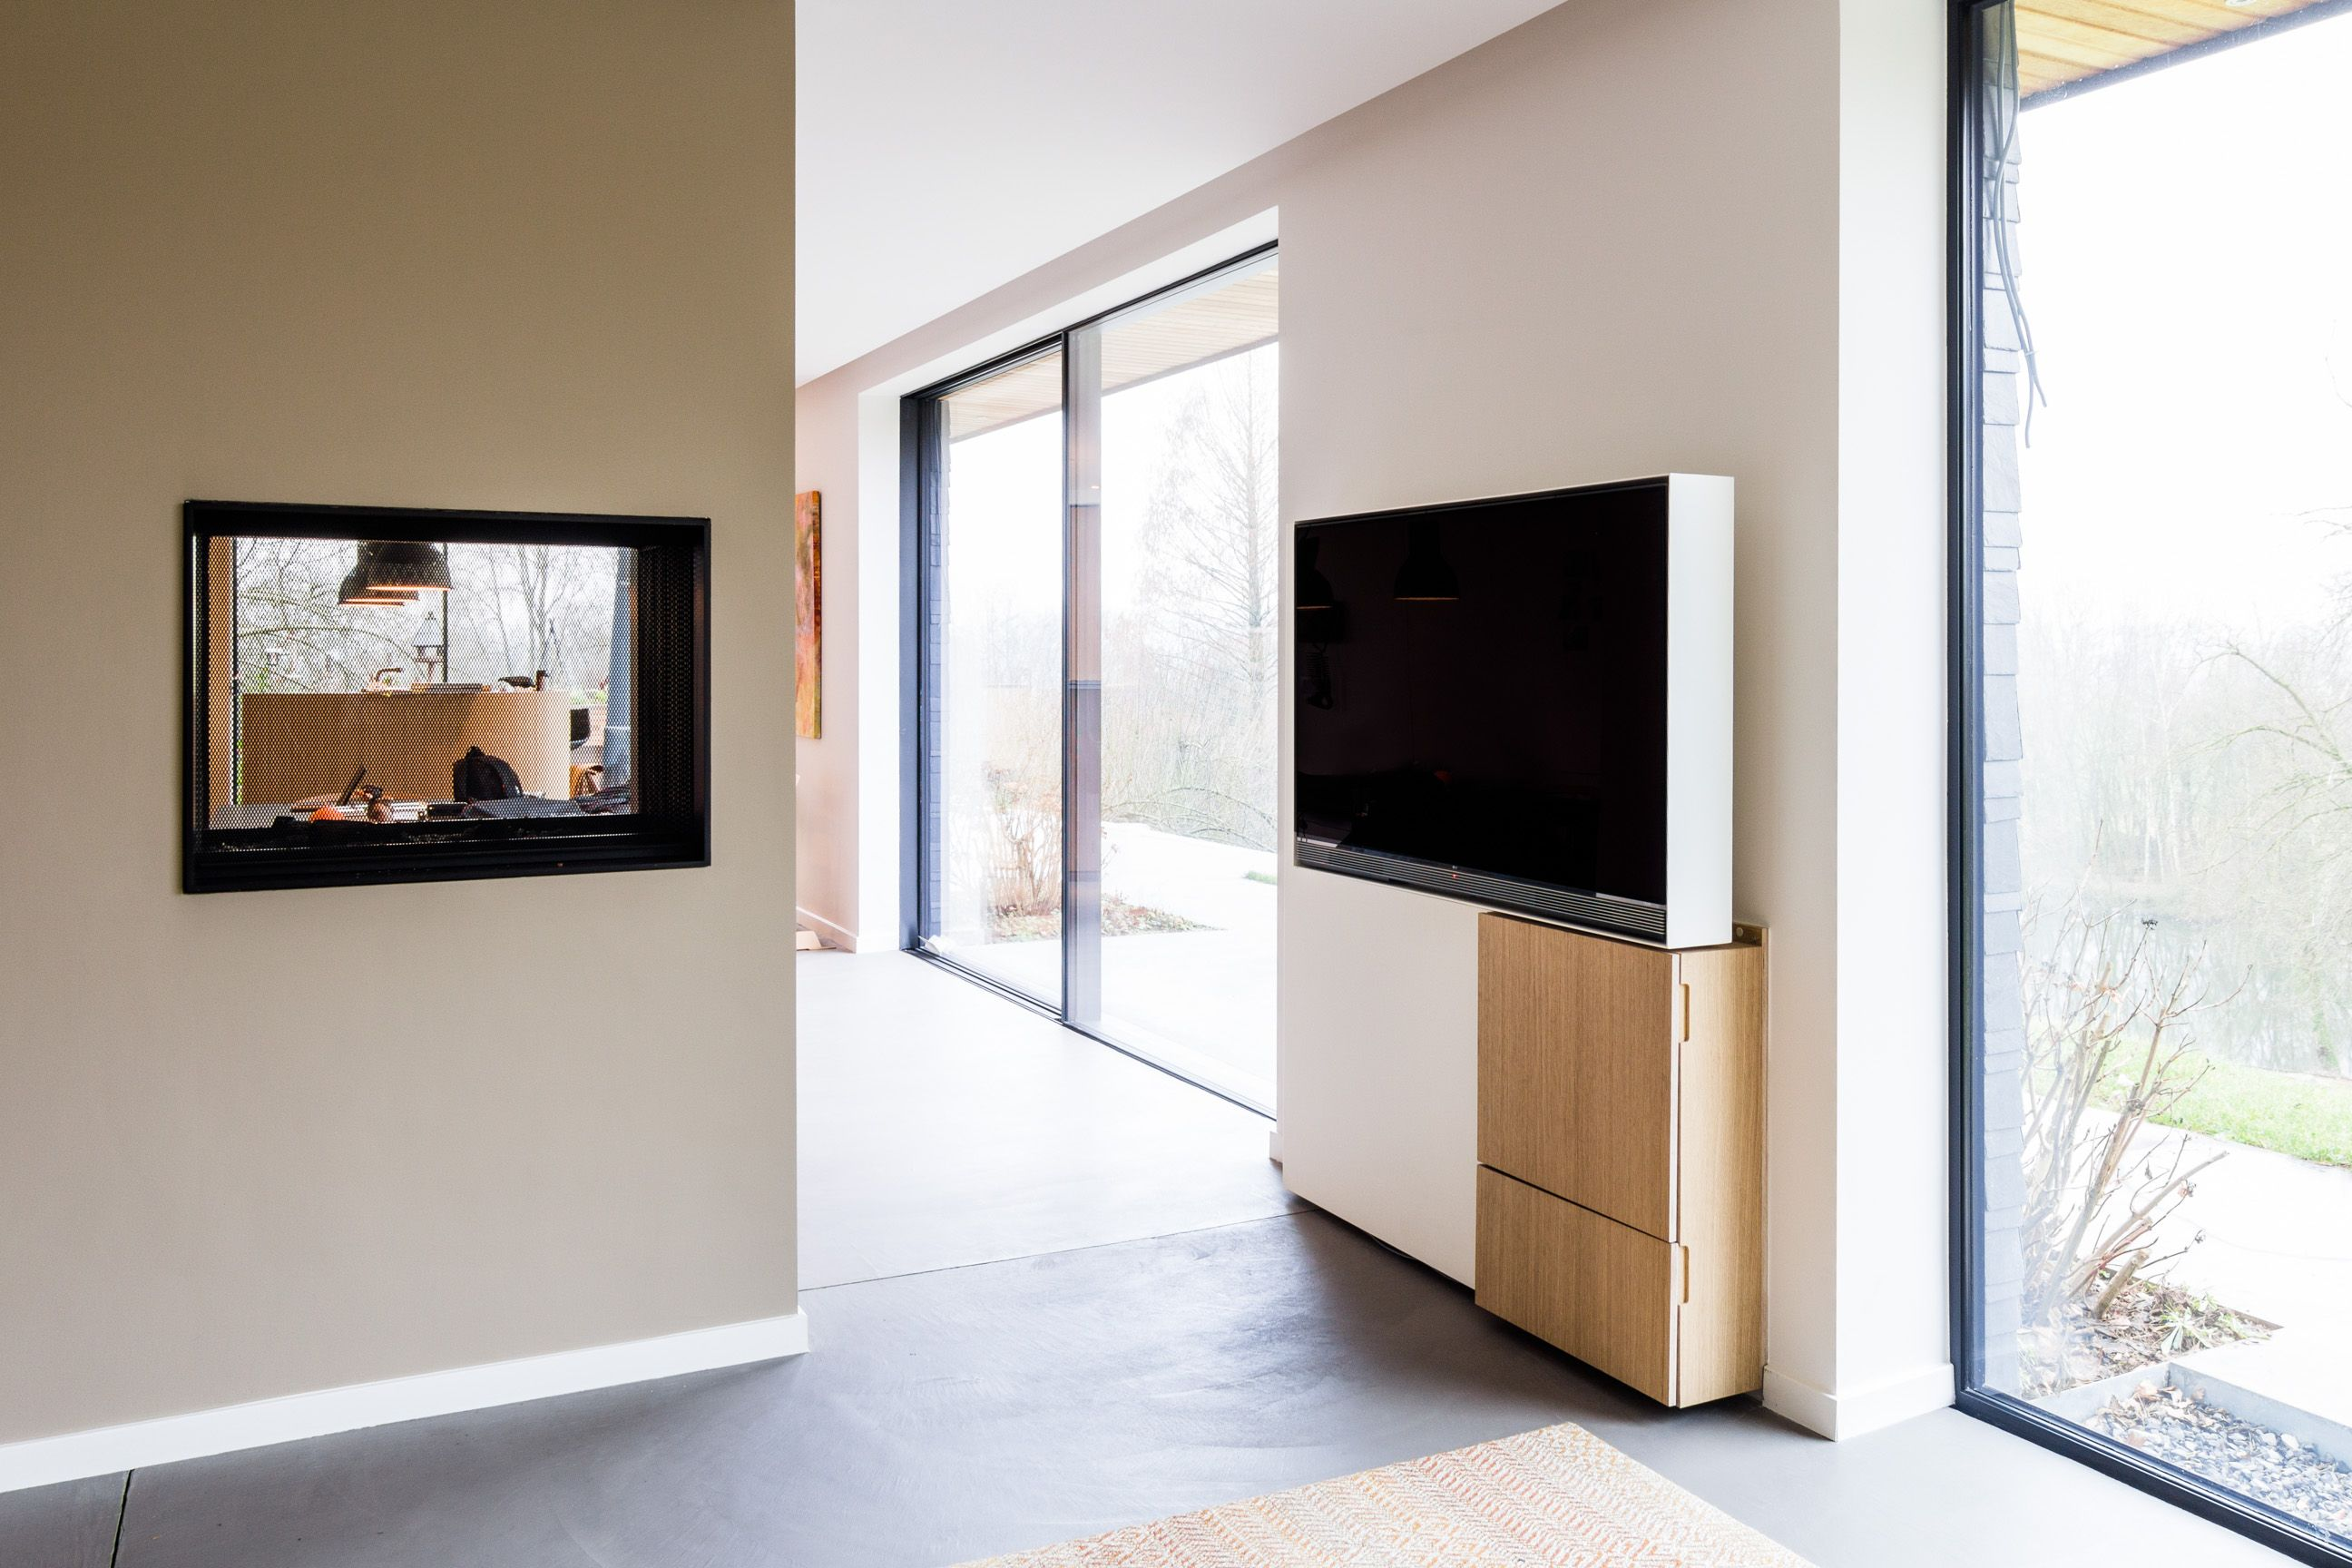 Meuble Tv Pivotant En Acier Et Bois Pivoting Tv Set Made Of Steel